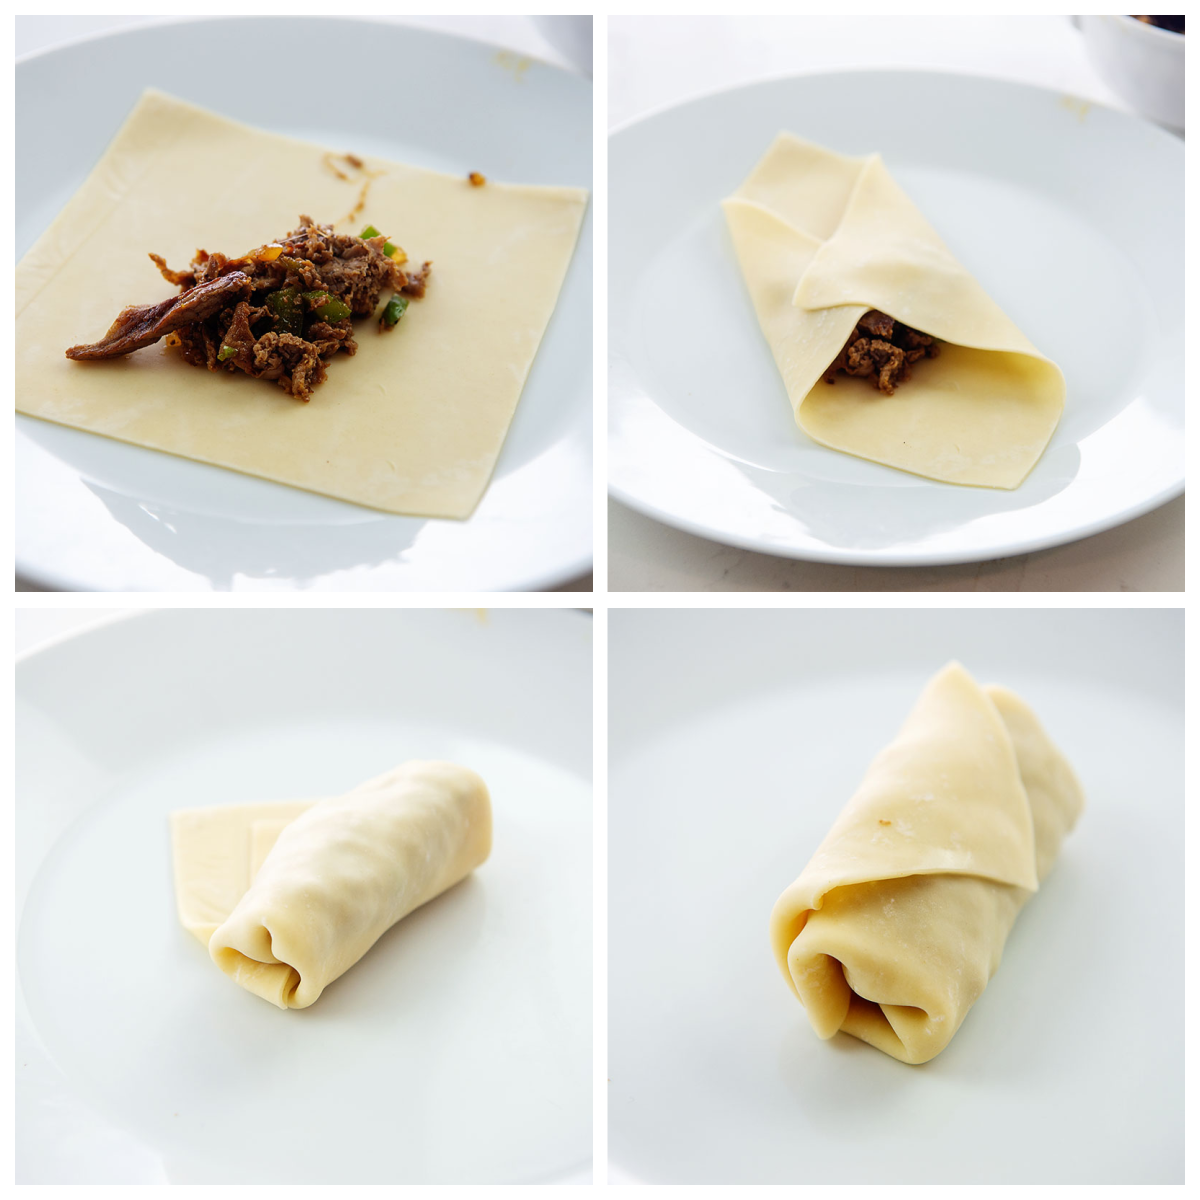 steps showing how to fold an egg roll